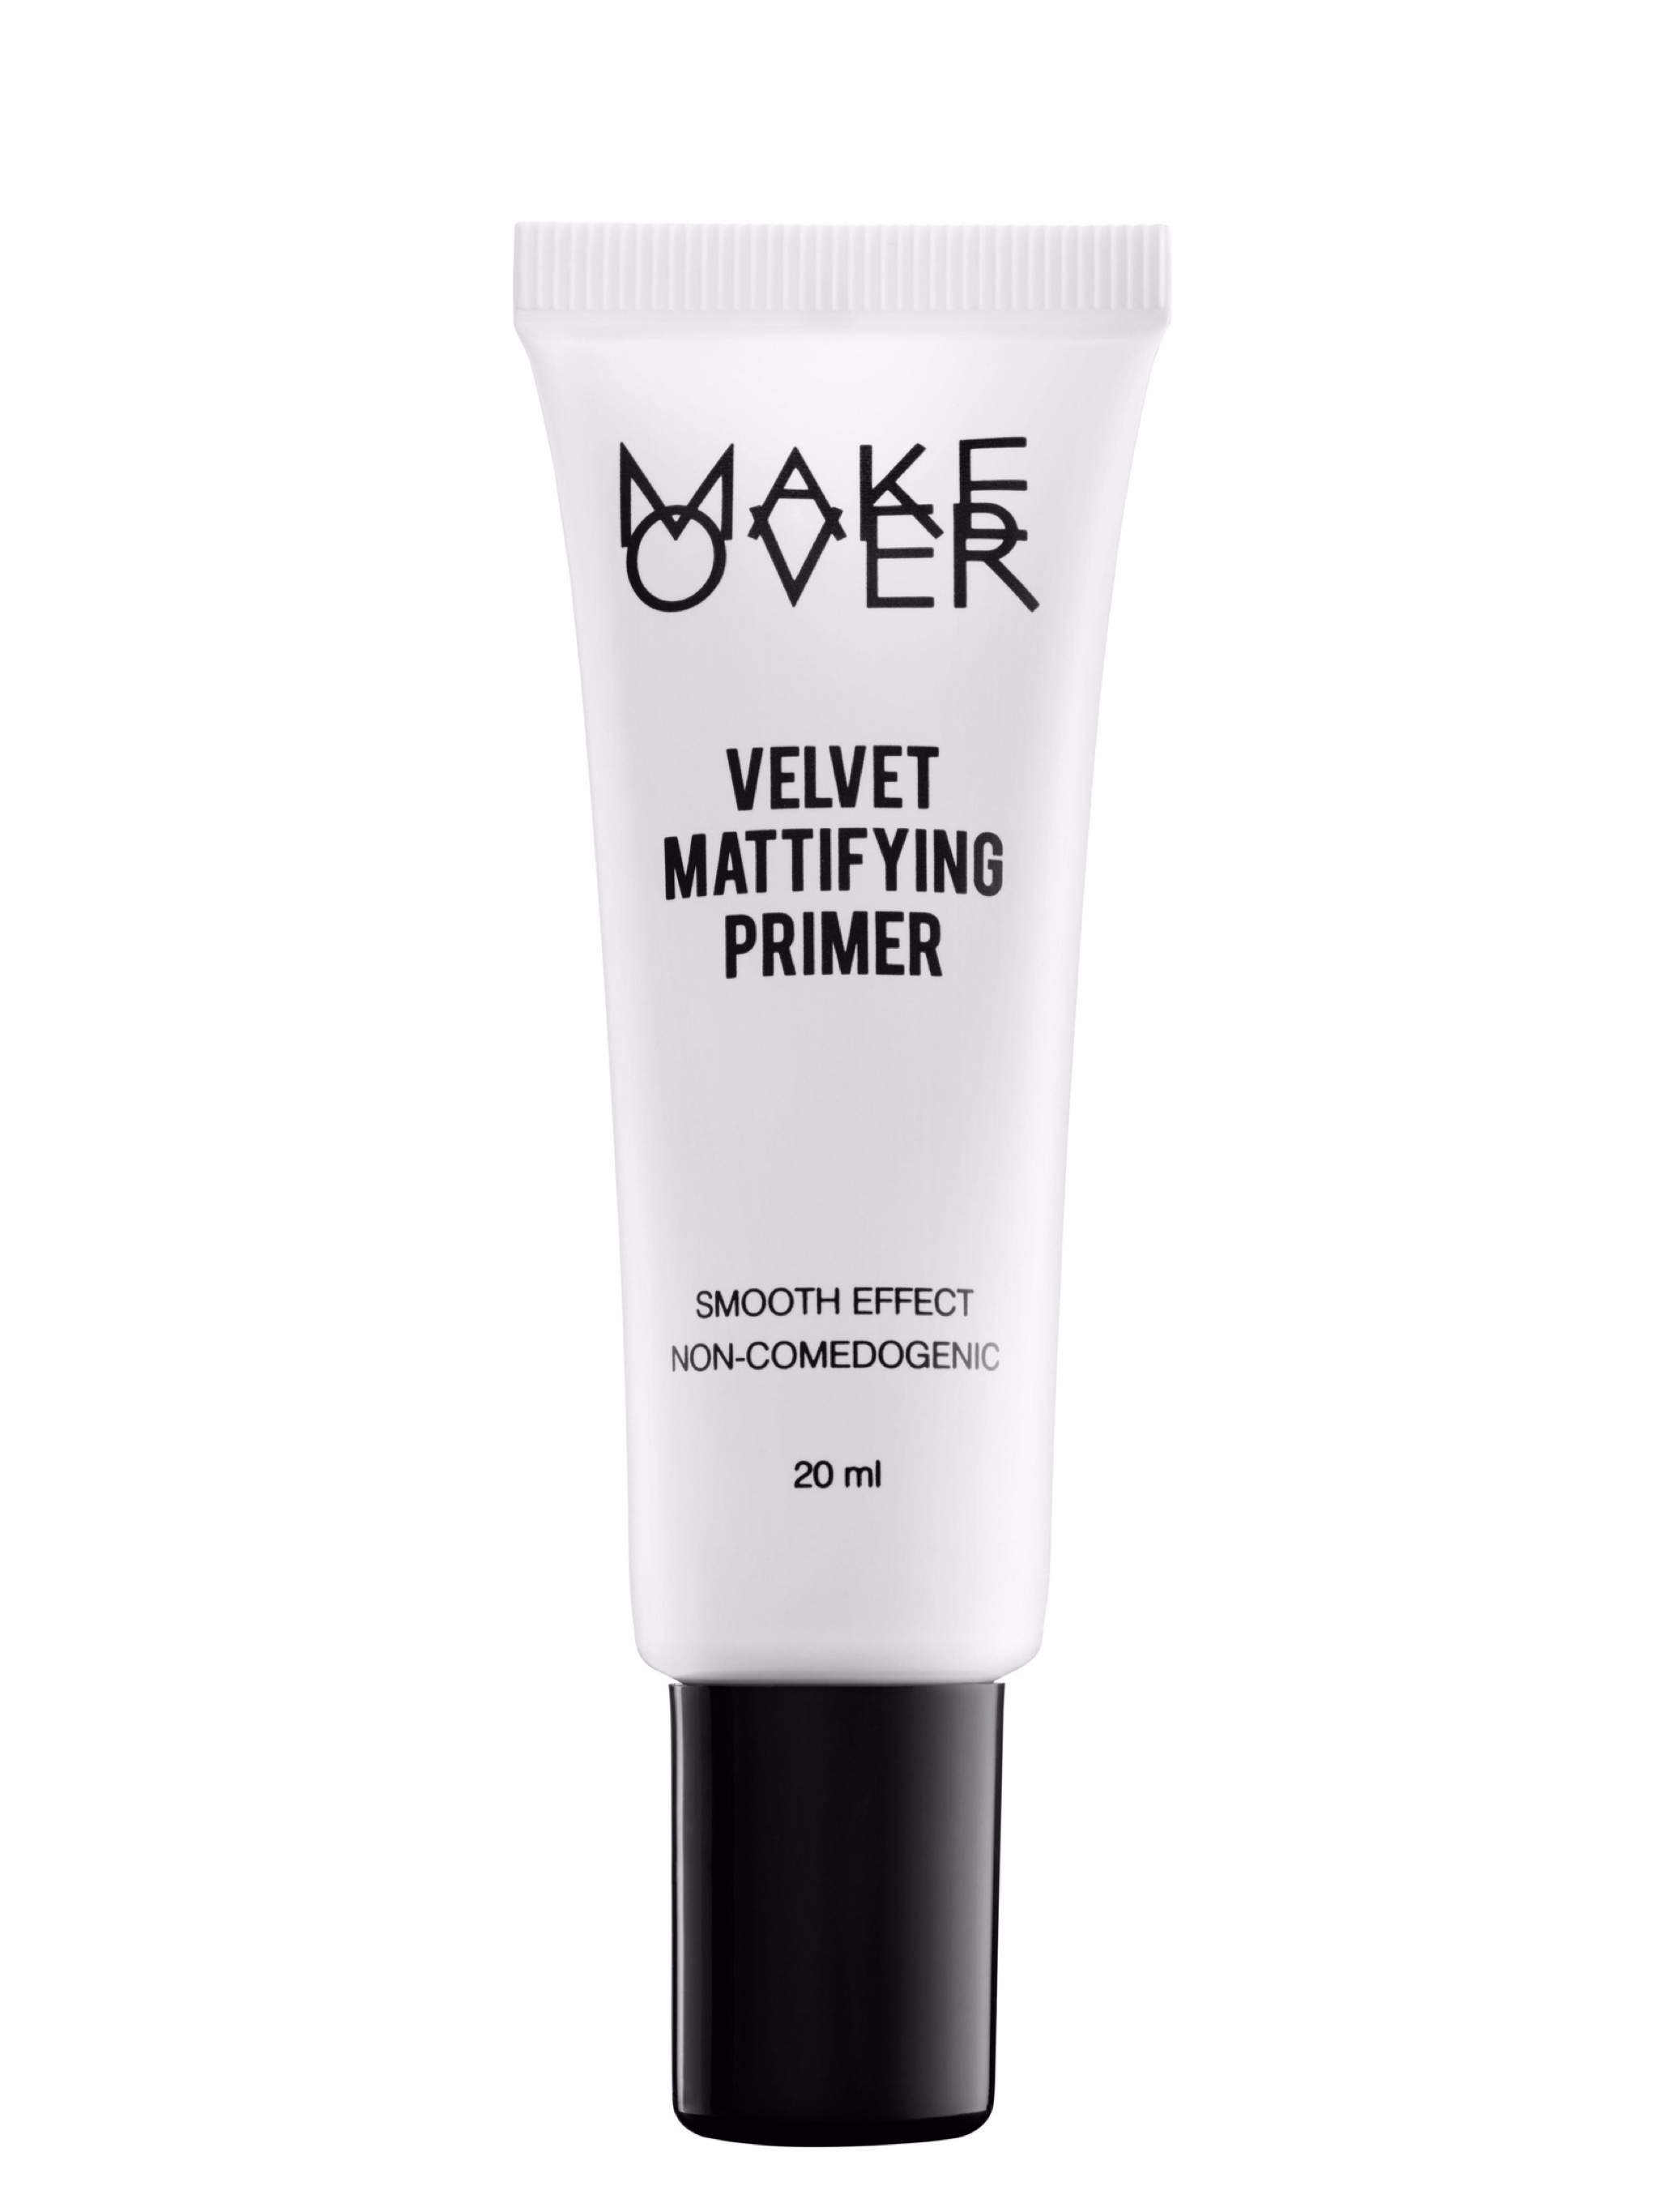 Make Over, Velvet Mattifying Primer